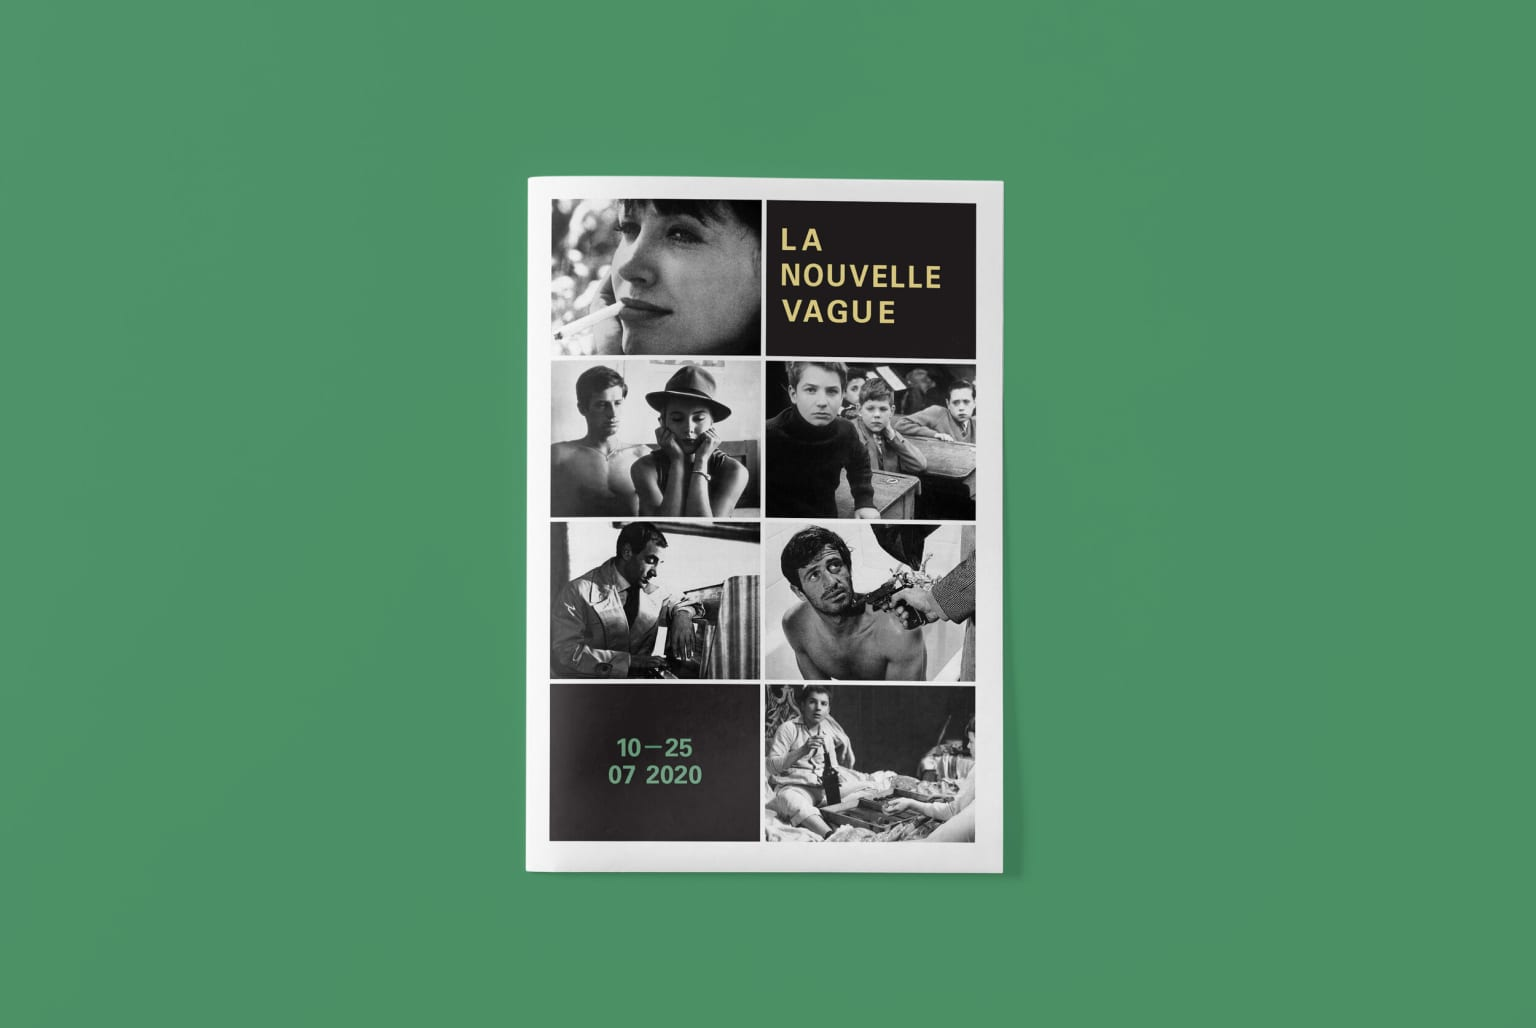 An ode to Nouvelle Vague